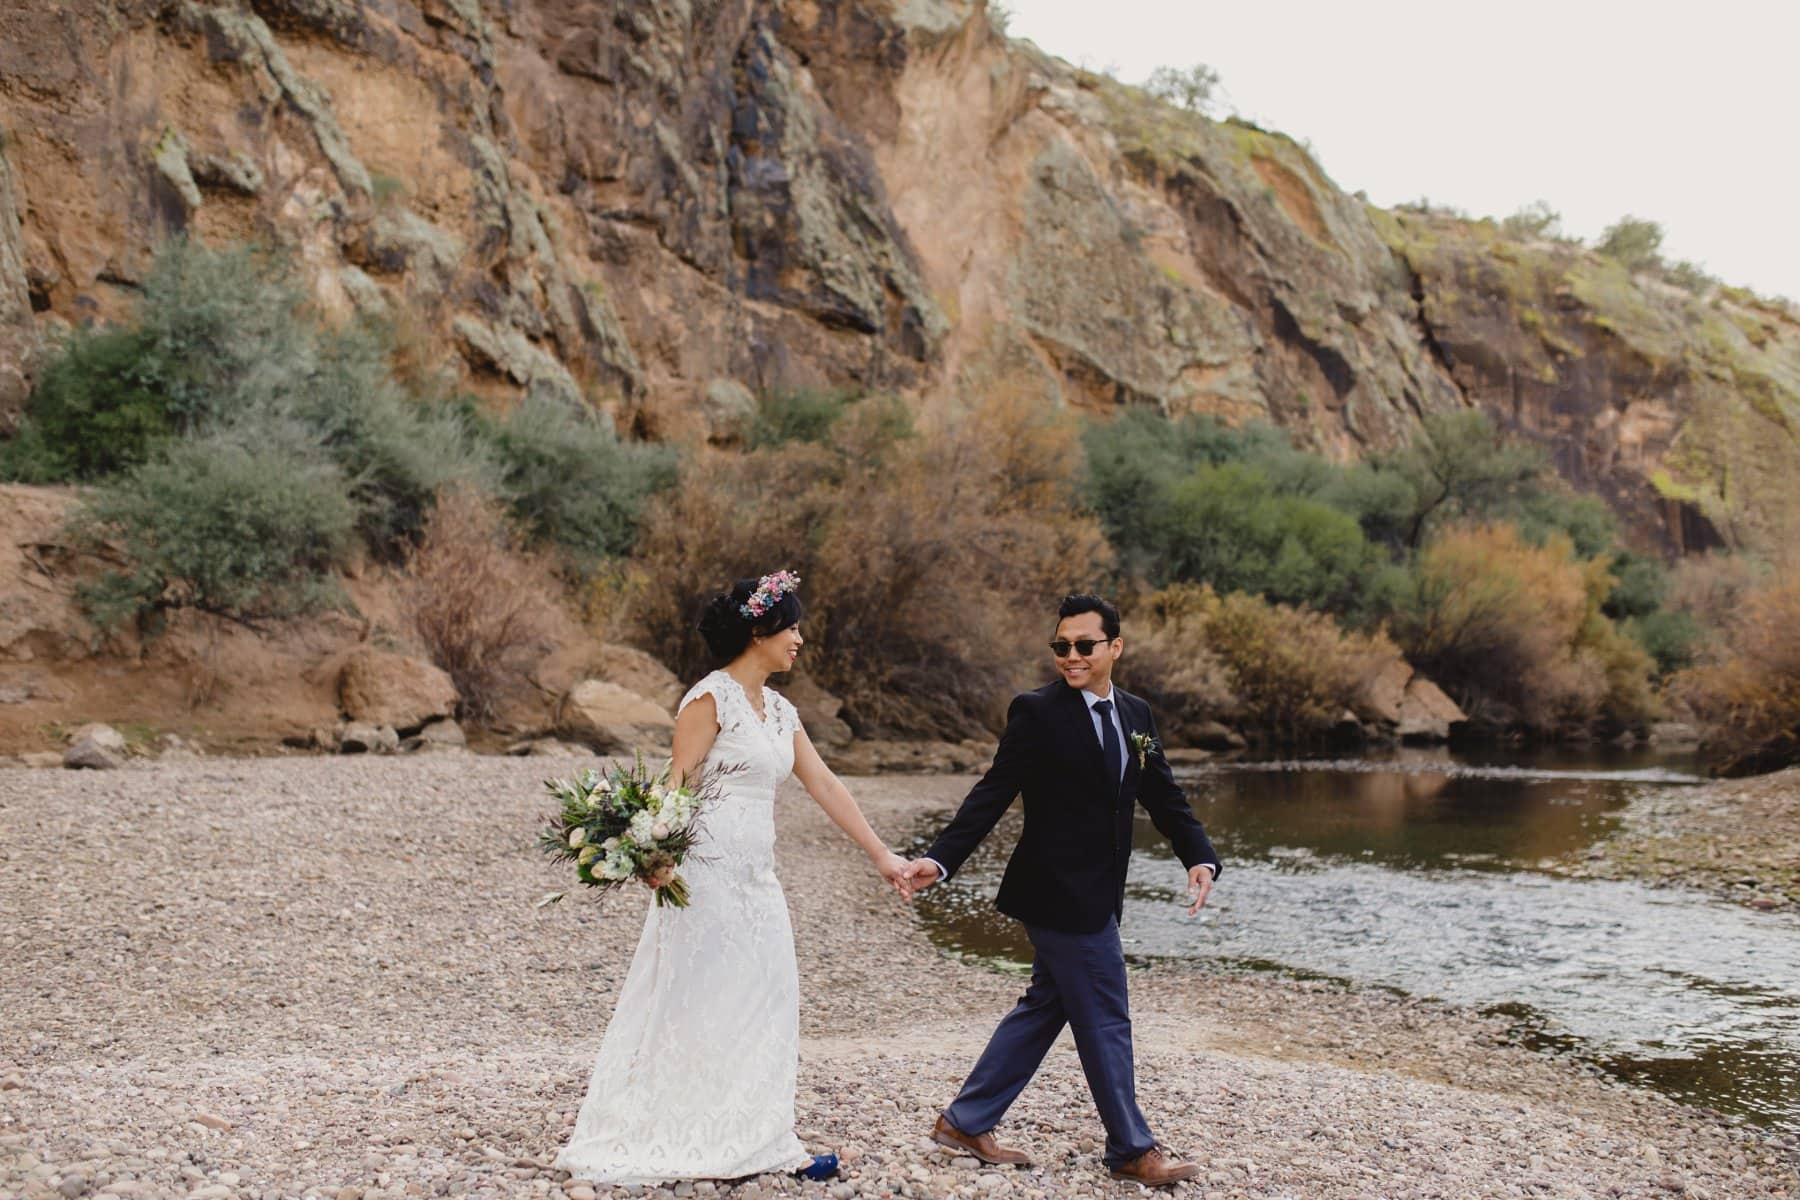 beautiful outdoor wedding locations in Arizona